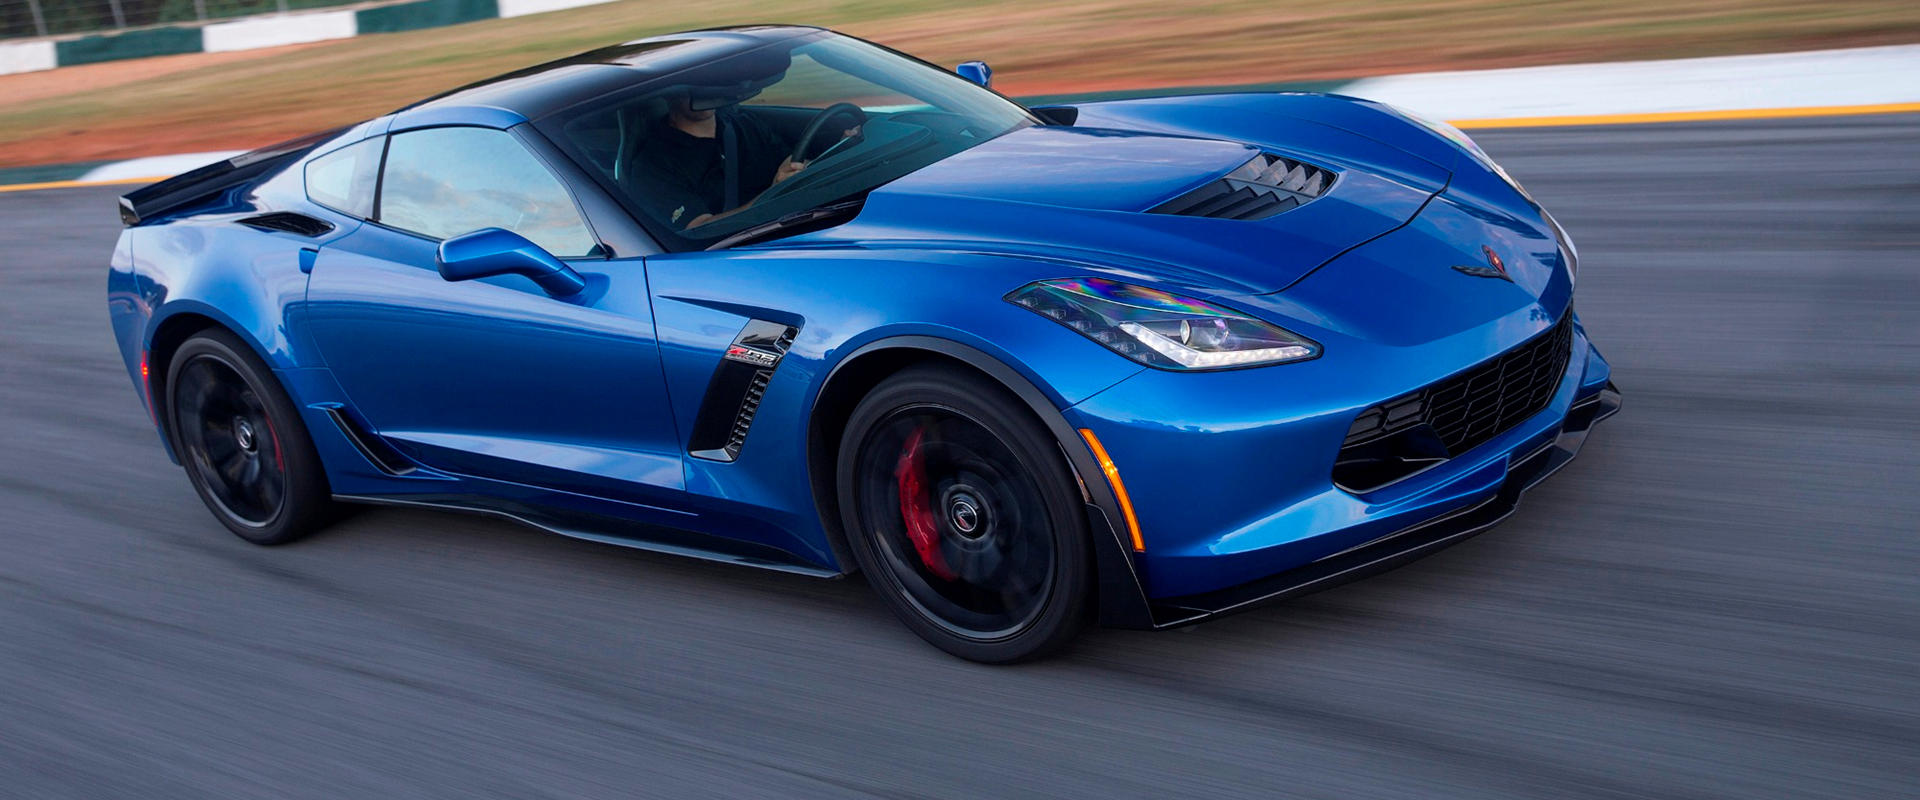 A Corvette Z06 Is An Amazing High-Power Sports Car For All Budgets ...